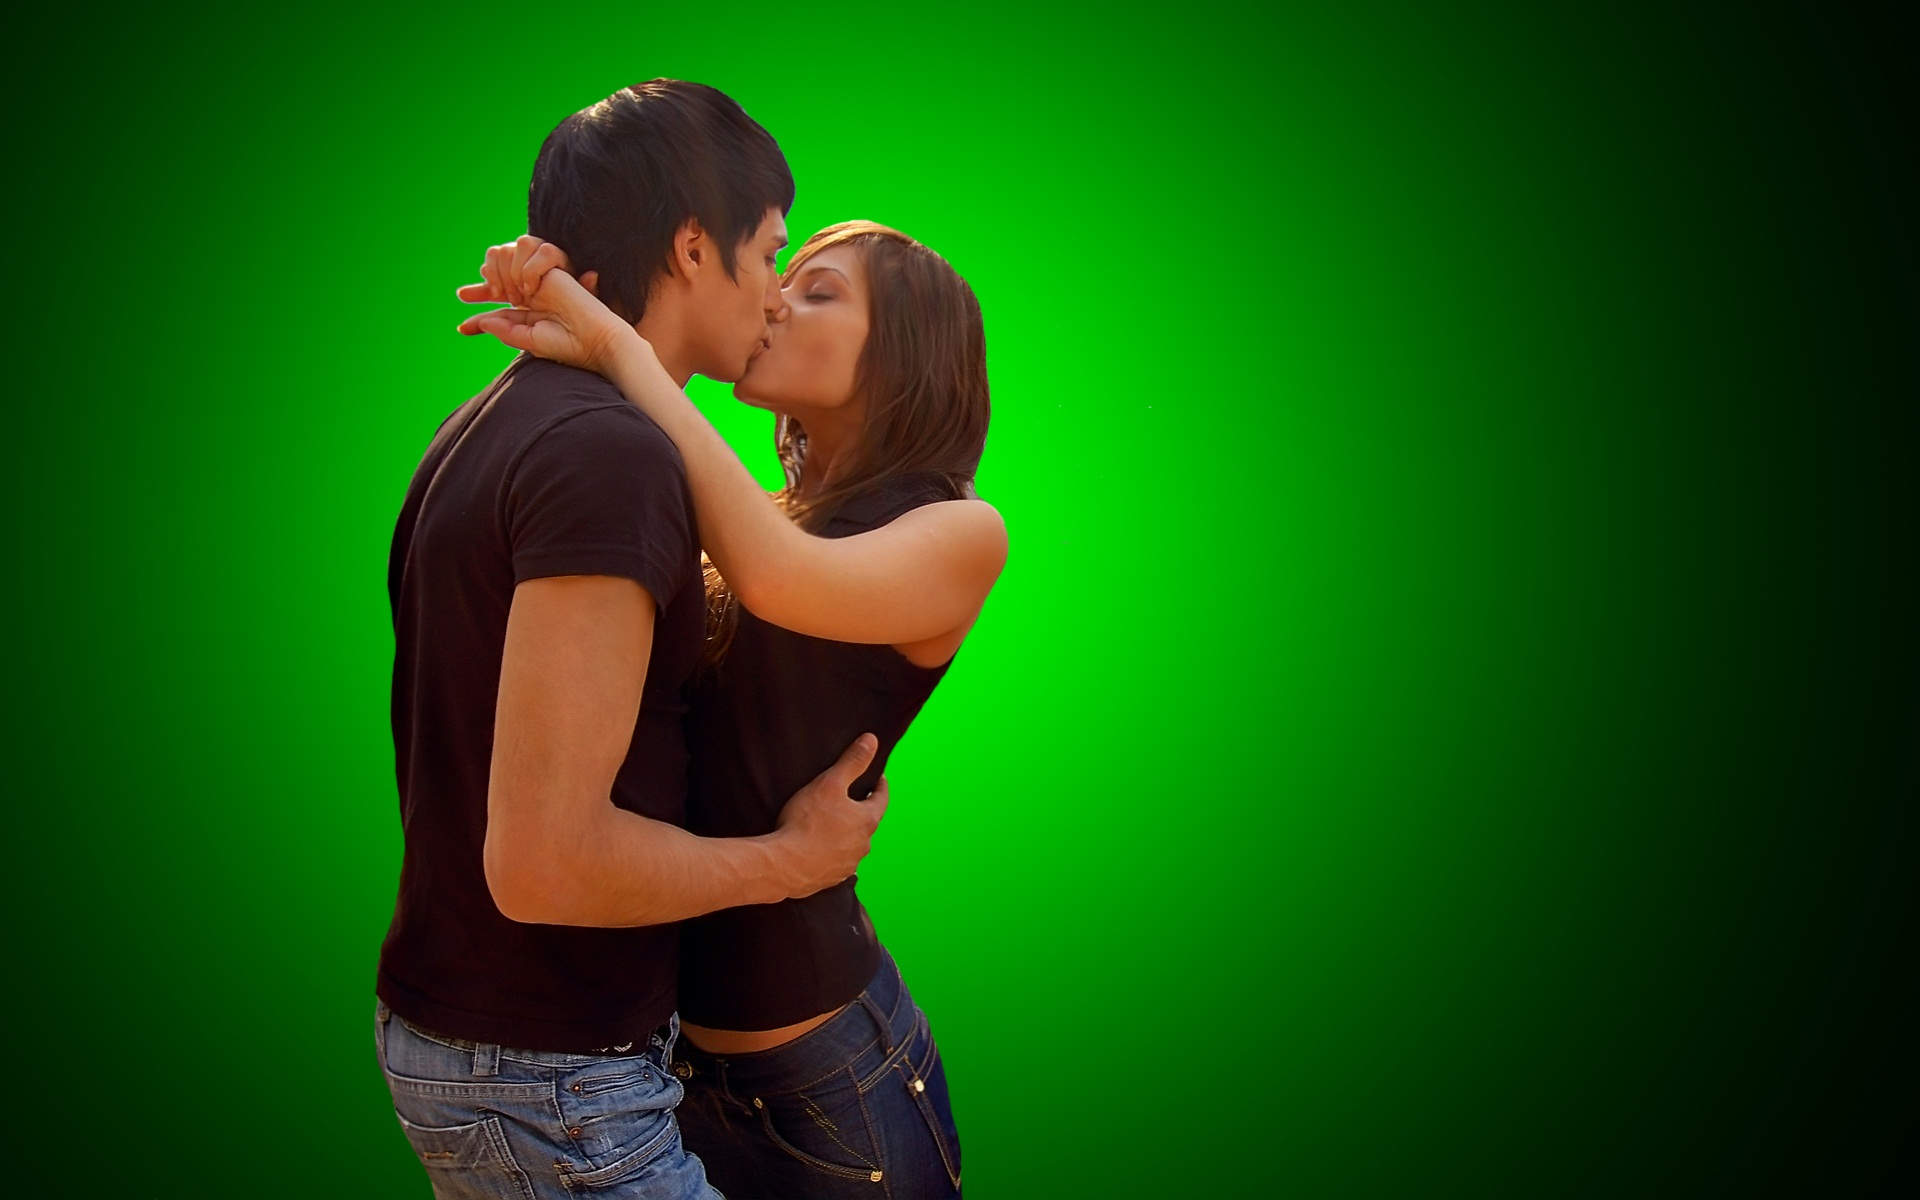 4 46140 kissing pictures of love couple hd kissing of